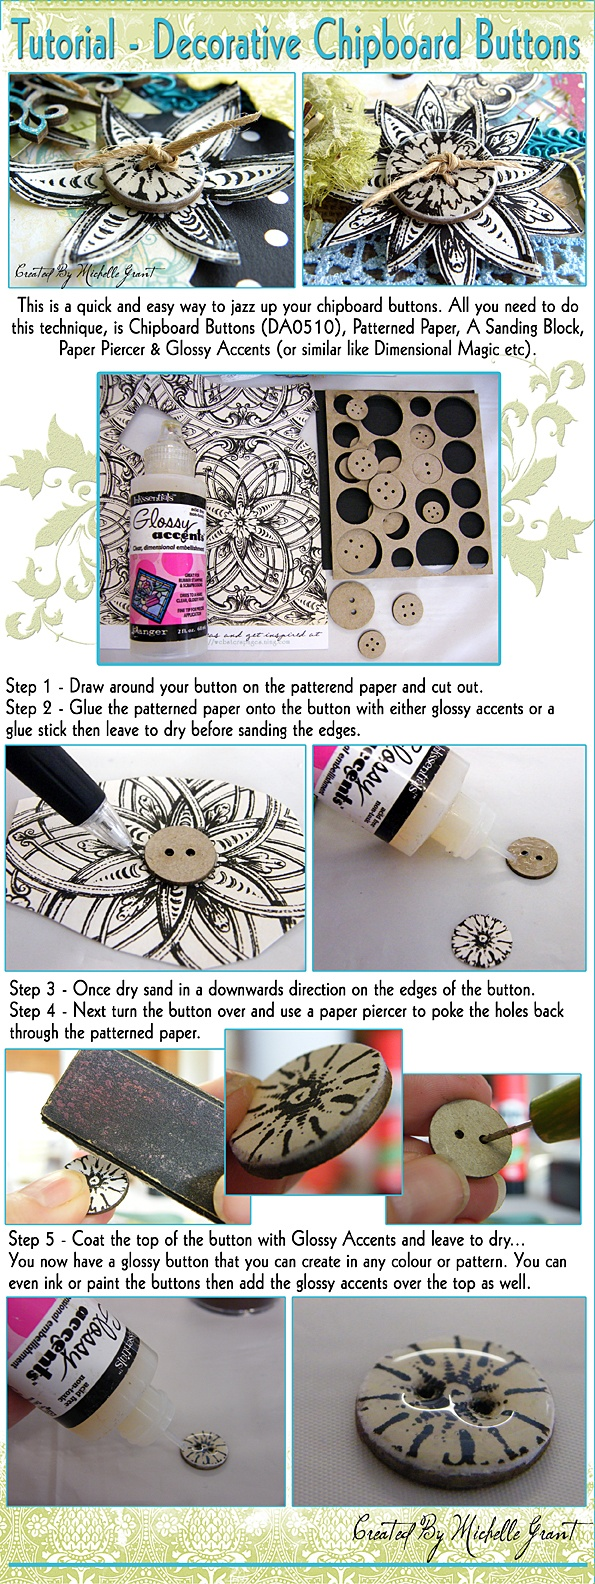 Tutorial - Decorative Chipboard Buttons